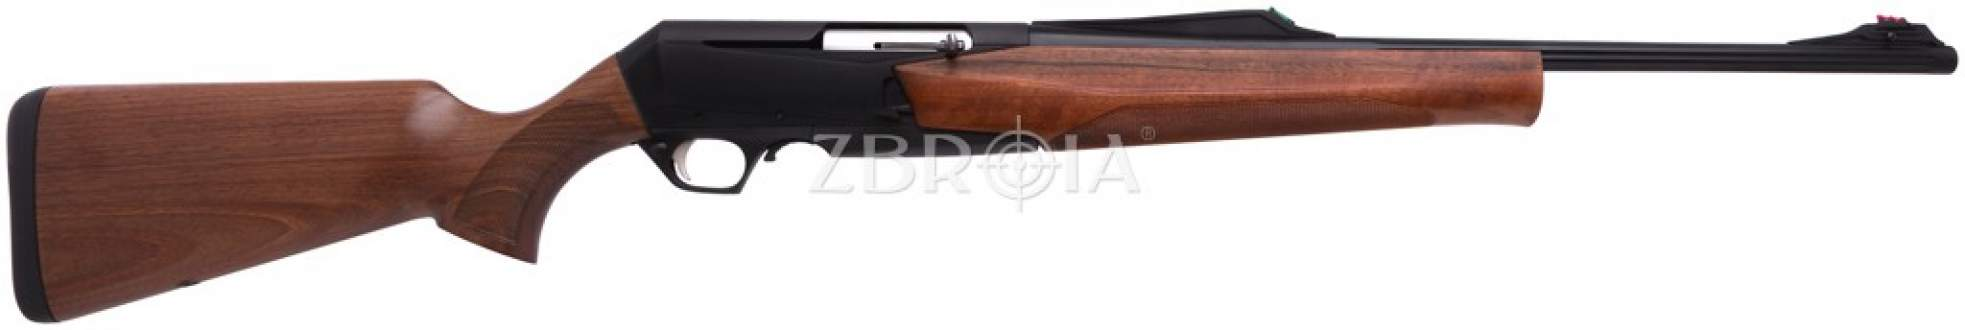 Карабин Browning BAR MK3 Hunter Fluted кал. 30-06